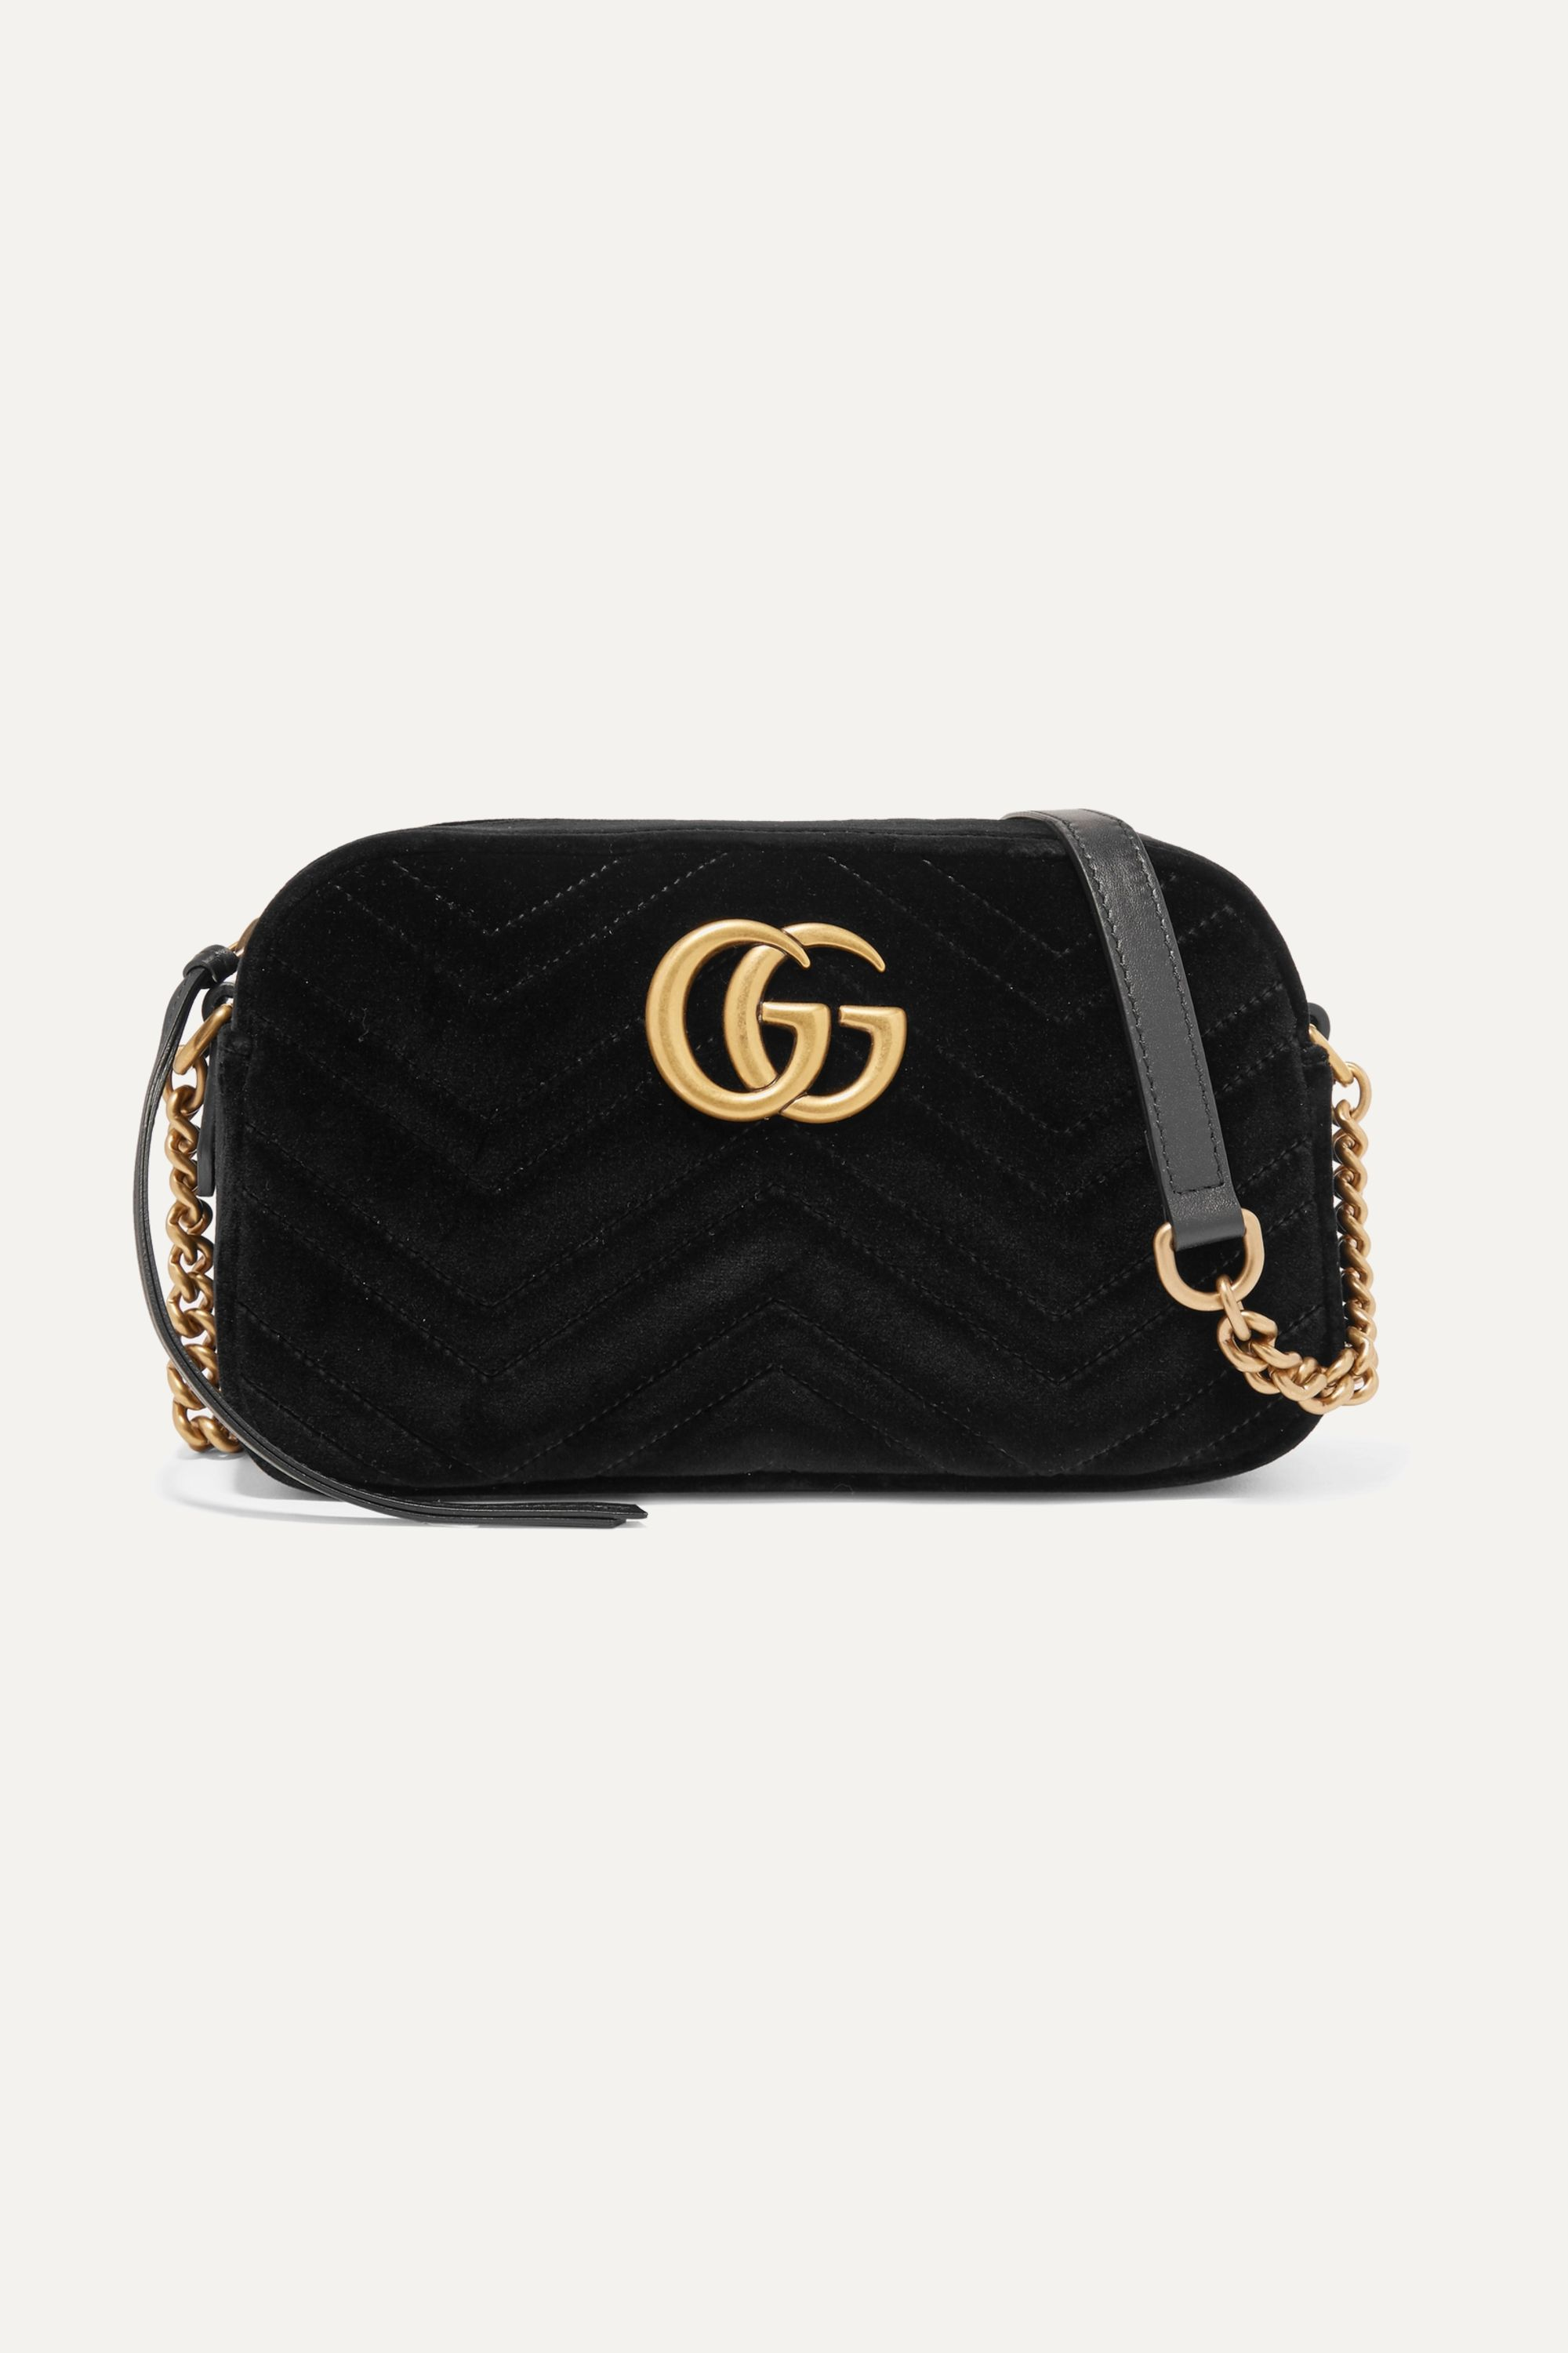 Black Gg Marmont Small Leather Trimmed Quilted Velvet Shoulder Bag Gucci Net A Porter